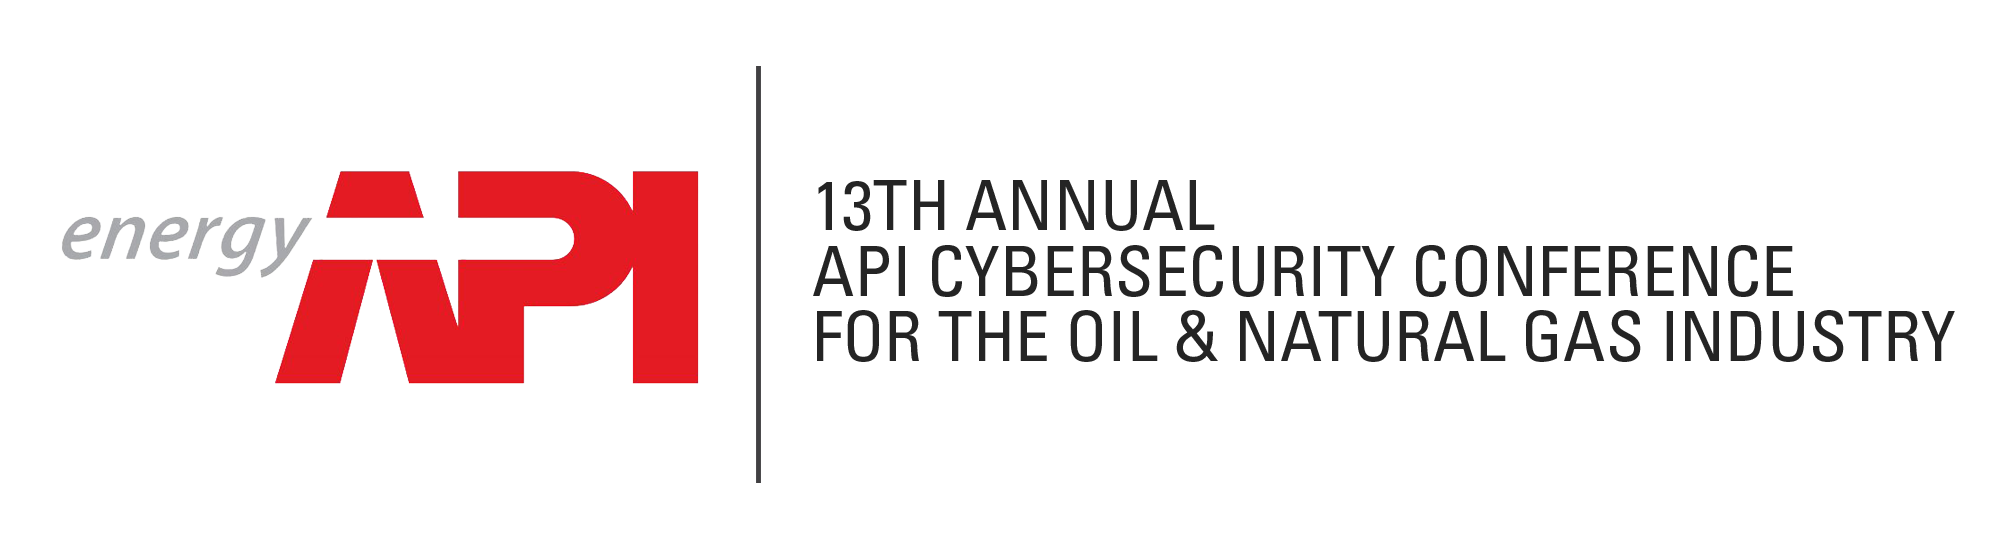 13th Annual API Cyber Security Conference for the Oil & Natural Gas Industry